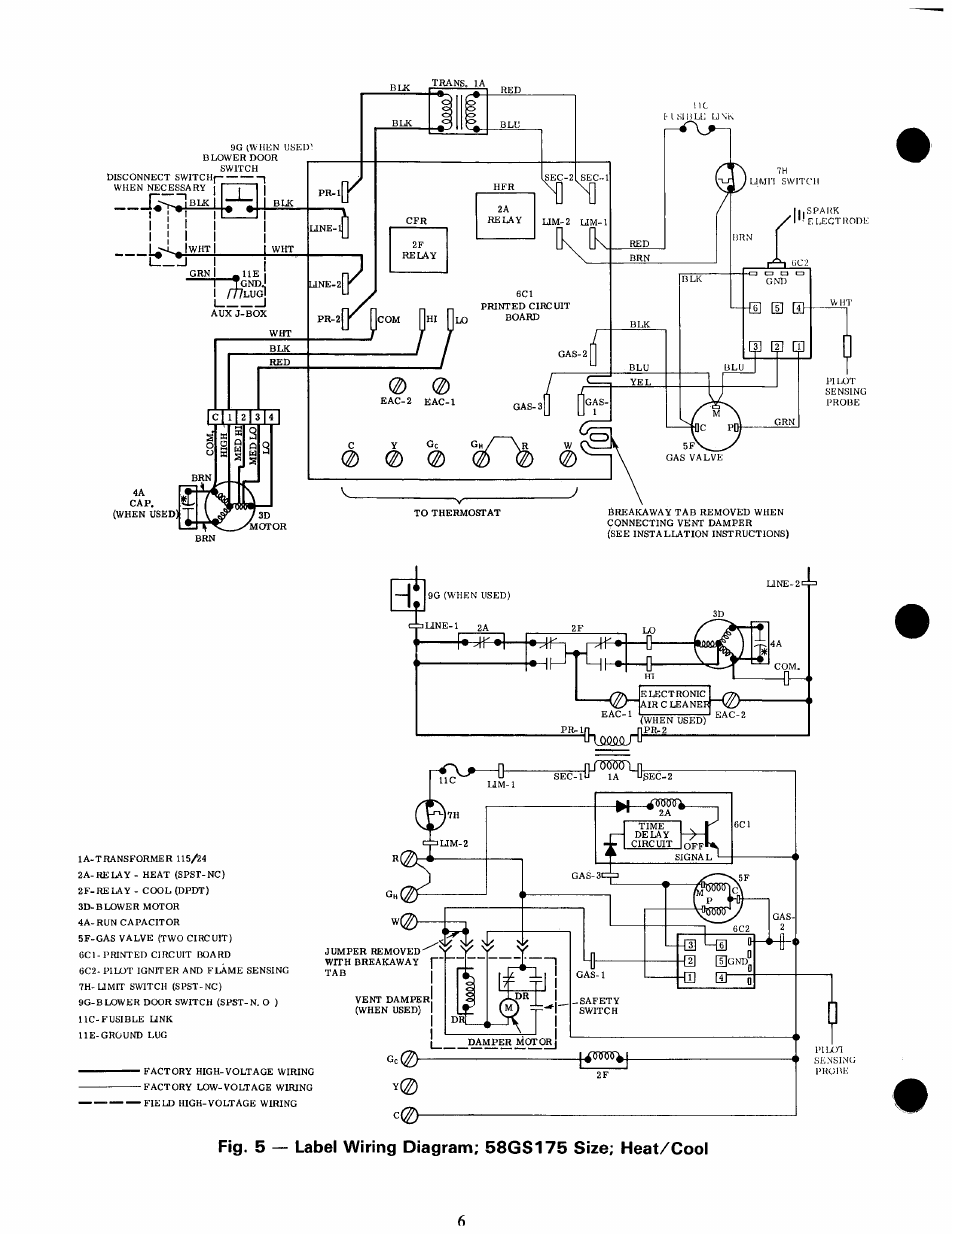 Carrier Limit Switch Wiring Diagram | Wiring Schematic Diagram on furnace parts diagram, furnace fan parts, furnace relay wiring, furnace fan center wiring, furnace schematic diagram, 6 pole furnace relay diagram, furnace fan motor, furnace fan capacitor, furnace fan timer, furnace fan exhaust, furnace motor winding diagram, furnace electrical diagram, furnace fan controls,